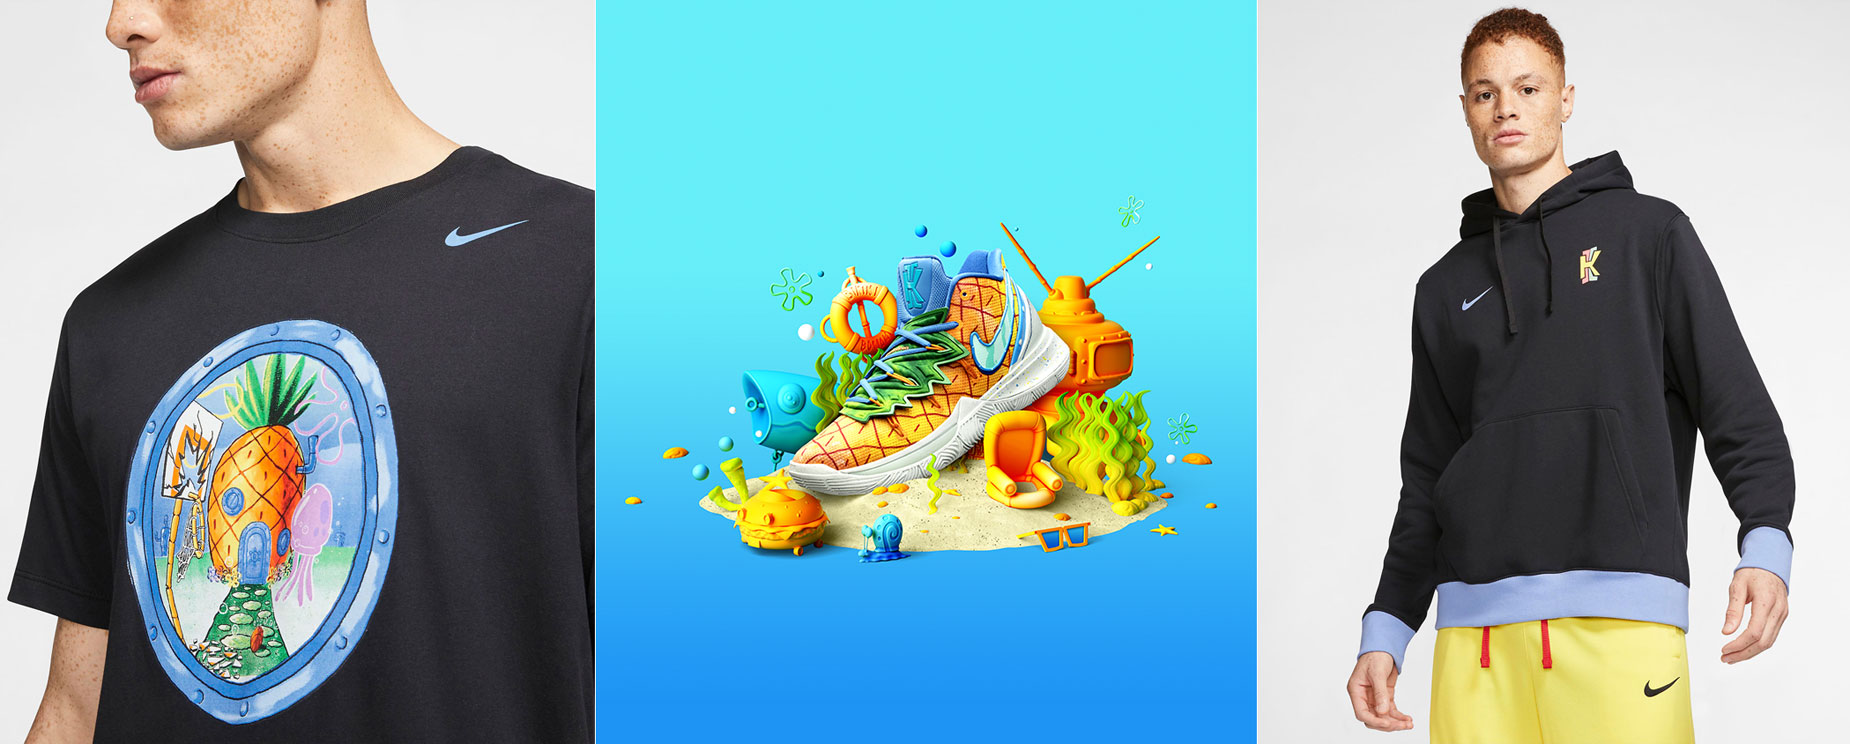 Preescolar Faringe Específicamente  Where to Buy the SpongeBob Nike Kyrie Pineapple Clothing and Shoes |  SneakerFits.com